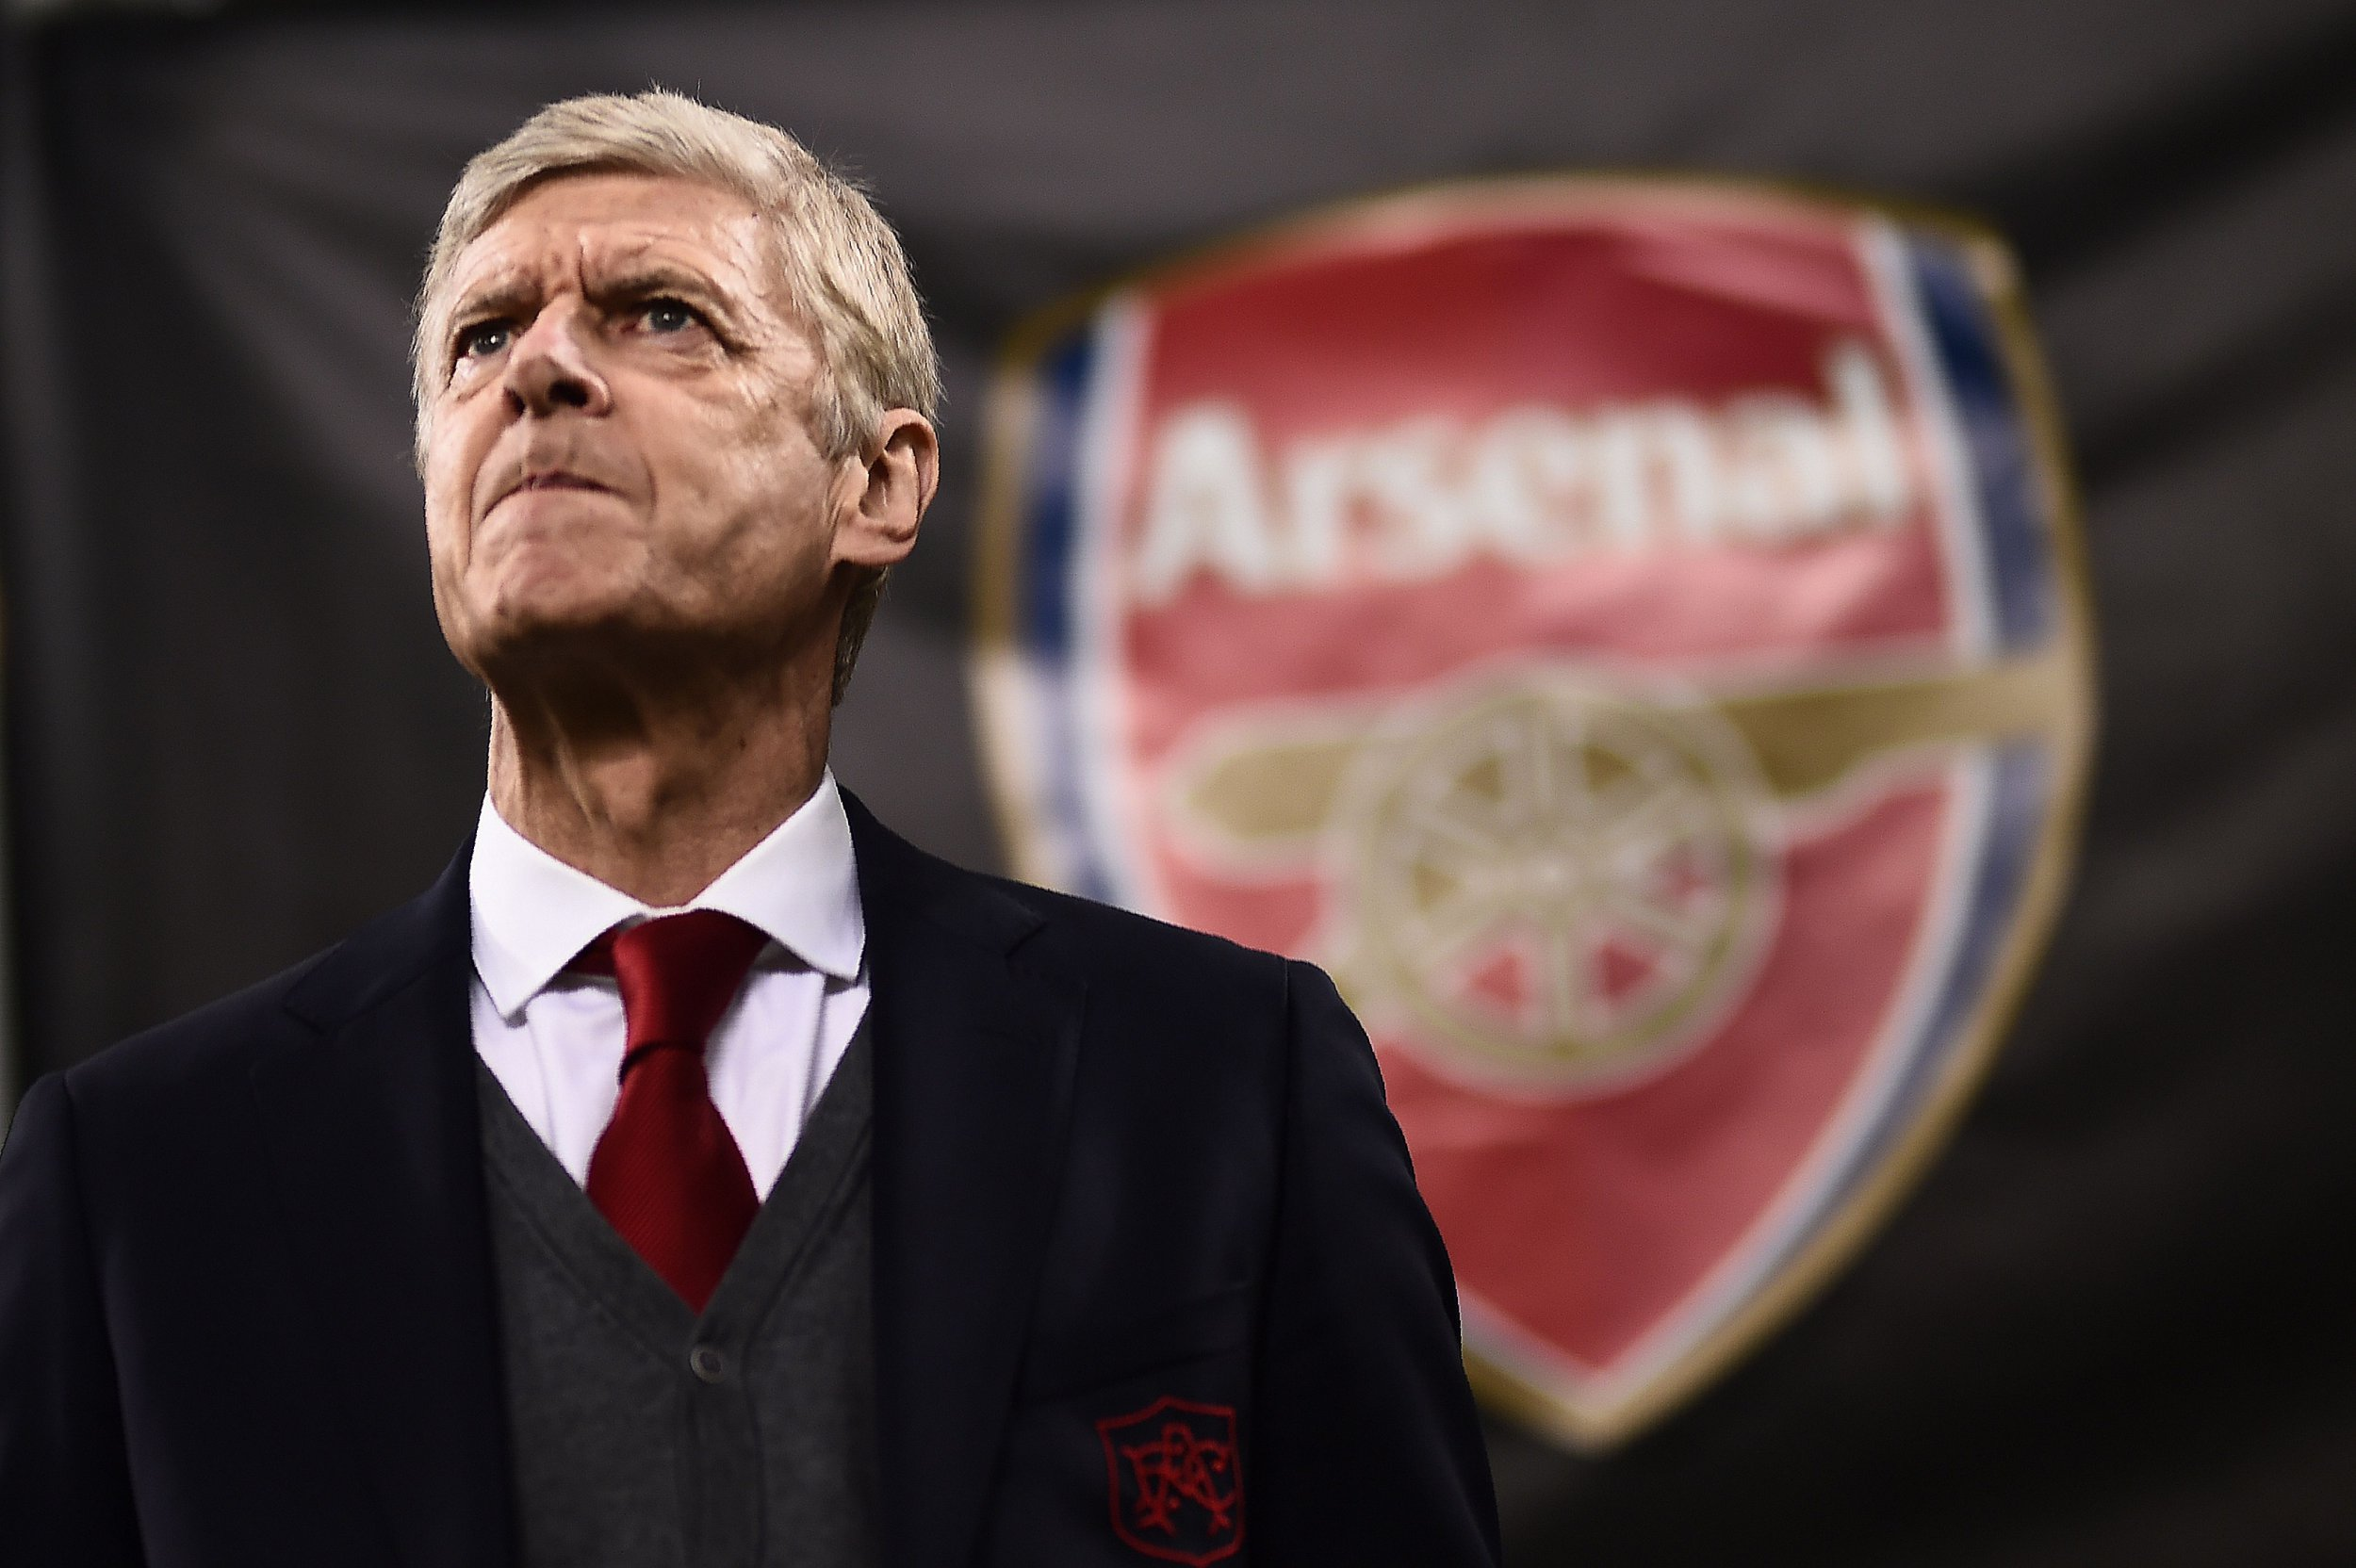 Patrick Vieira reveals Arsene Wenger's pain at criticism from former Arsenal stars